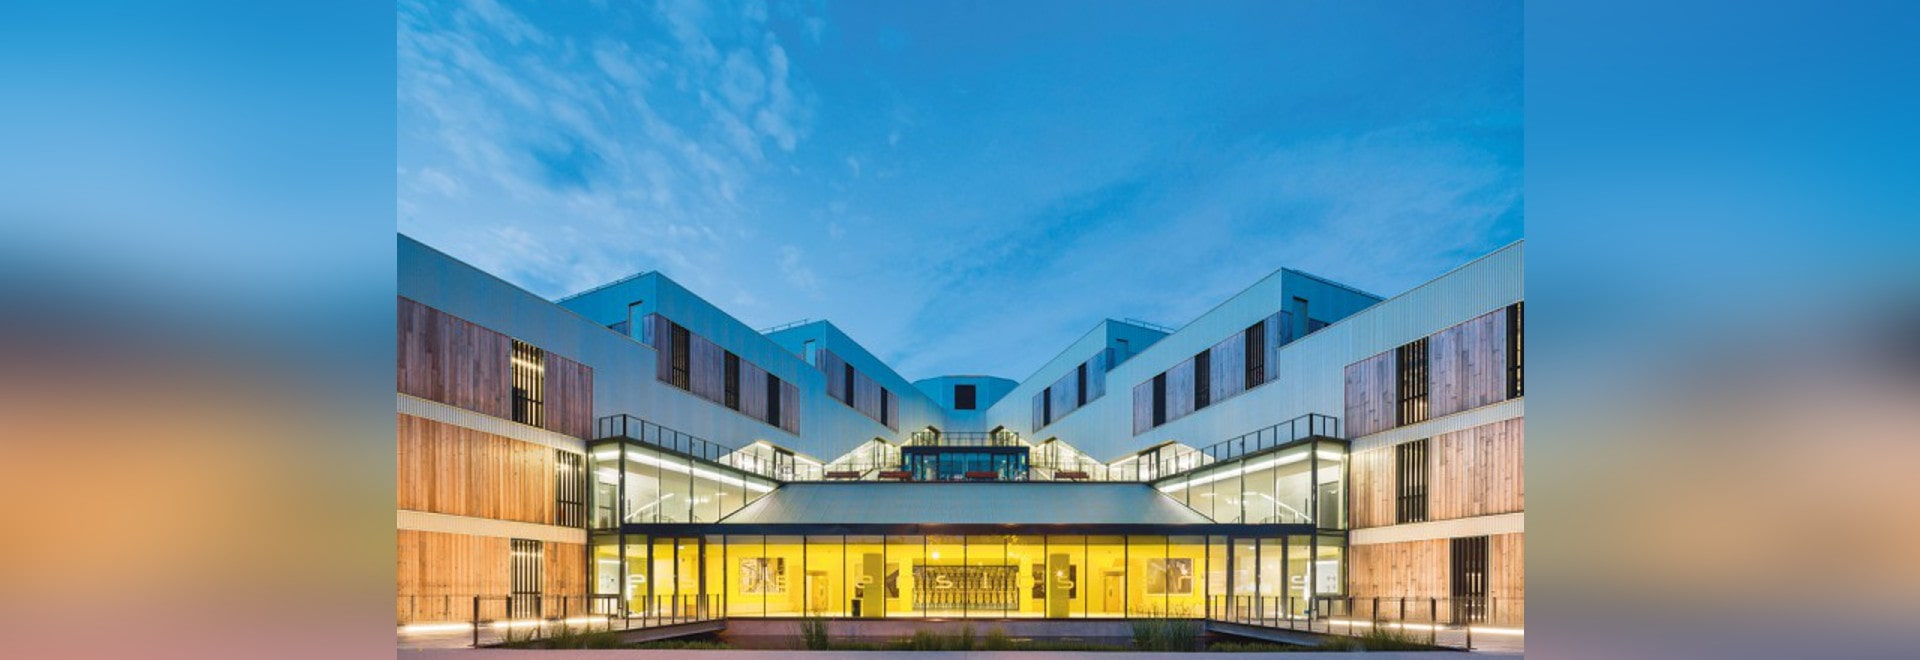 HIGHER SCHOOL OF ENGINEERING BY ANMA